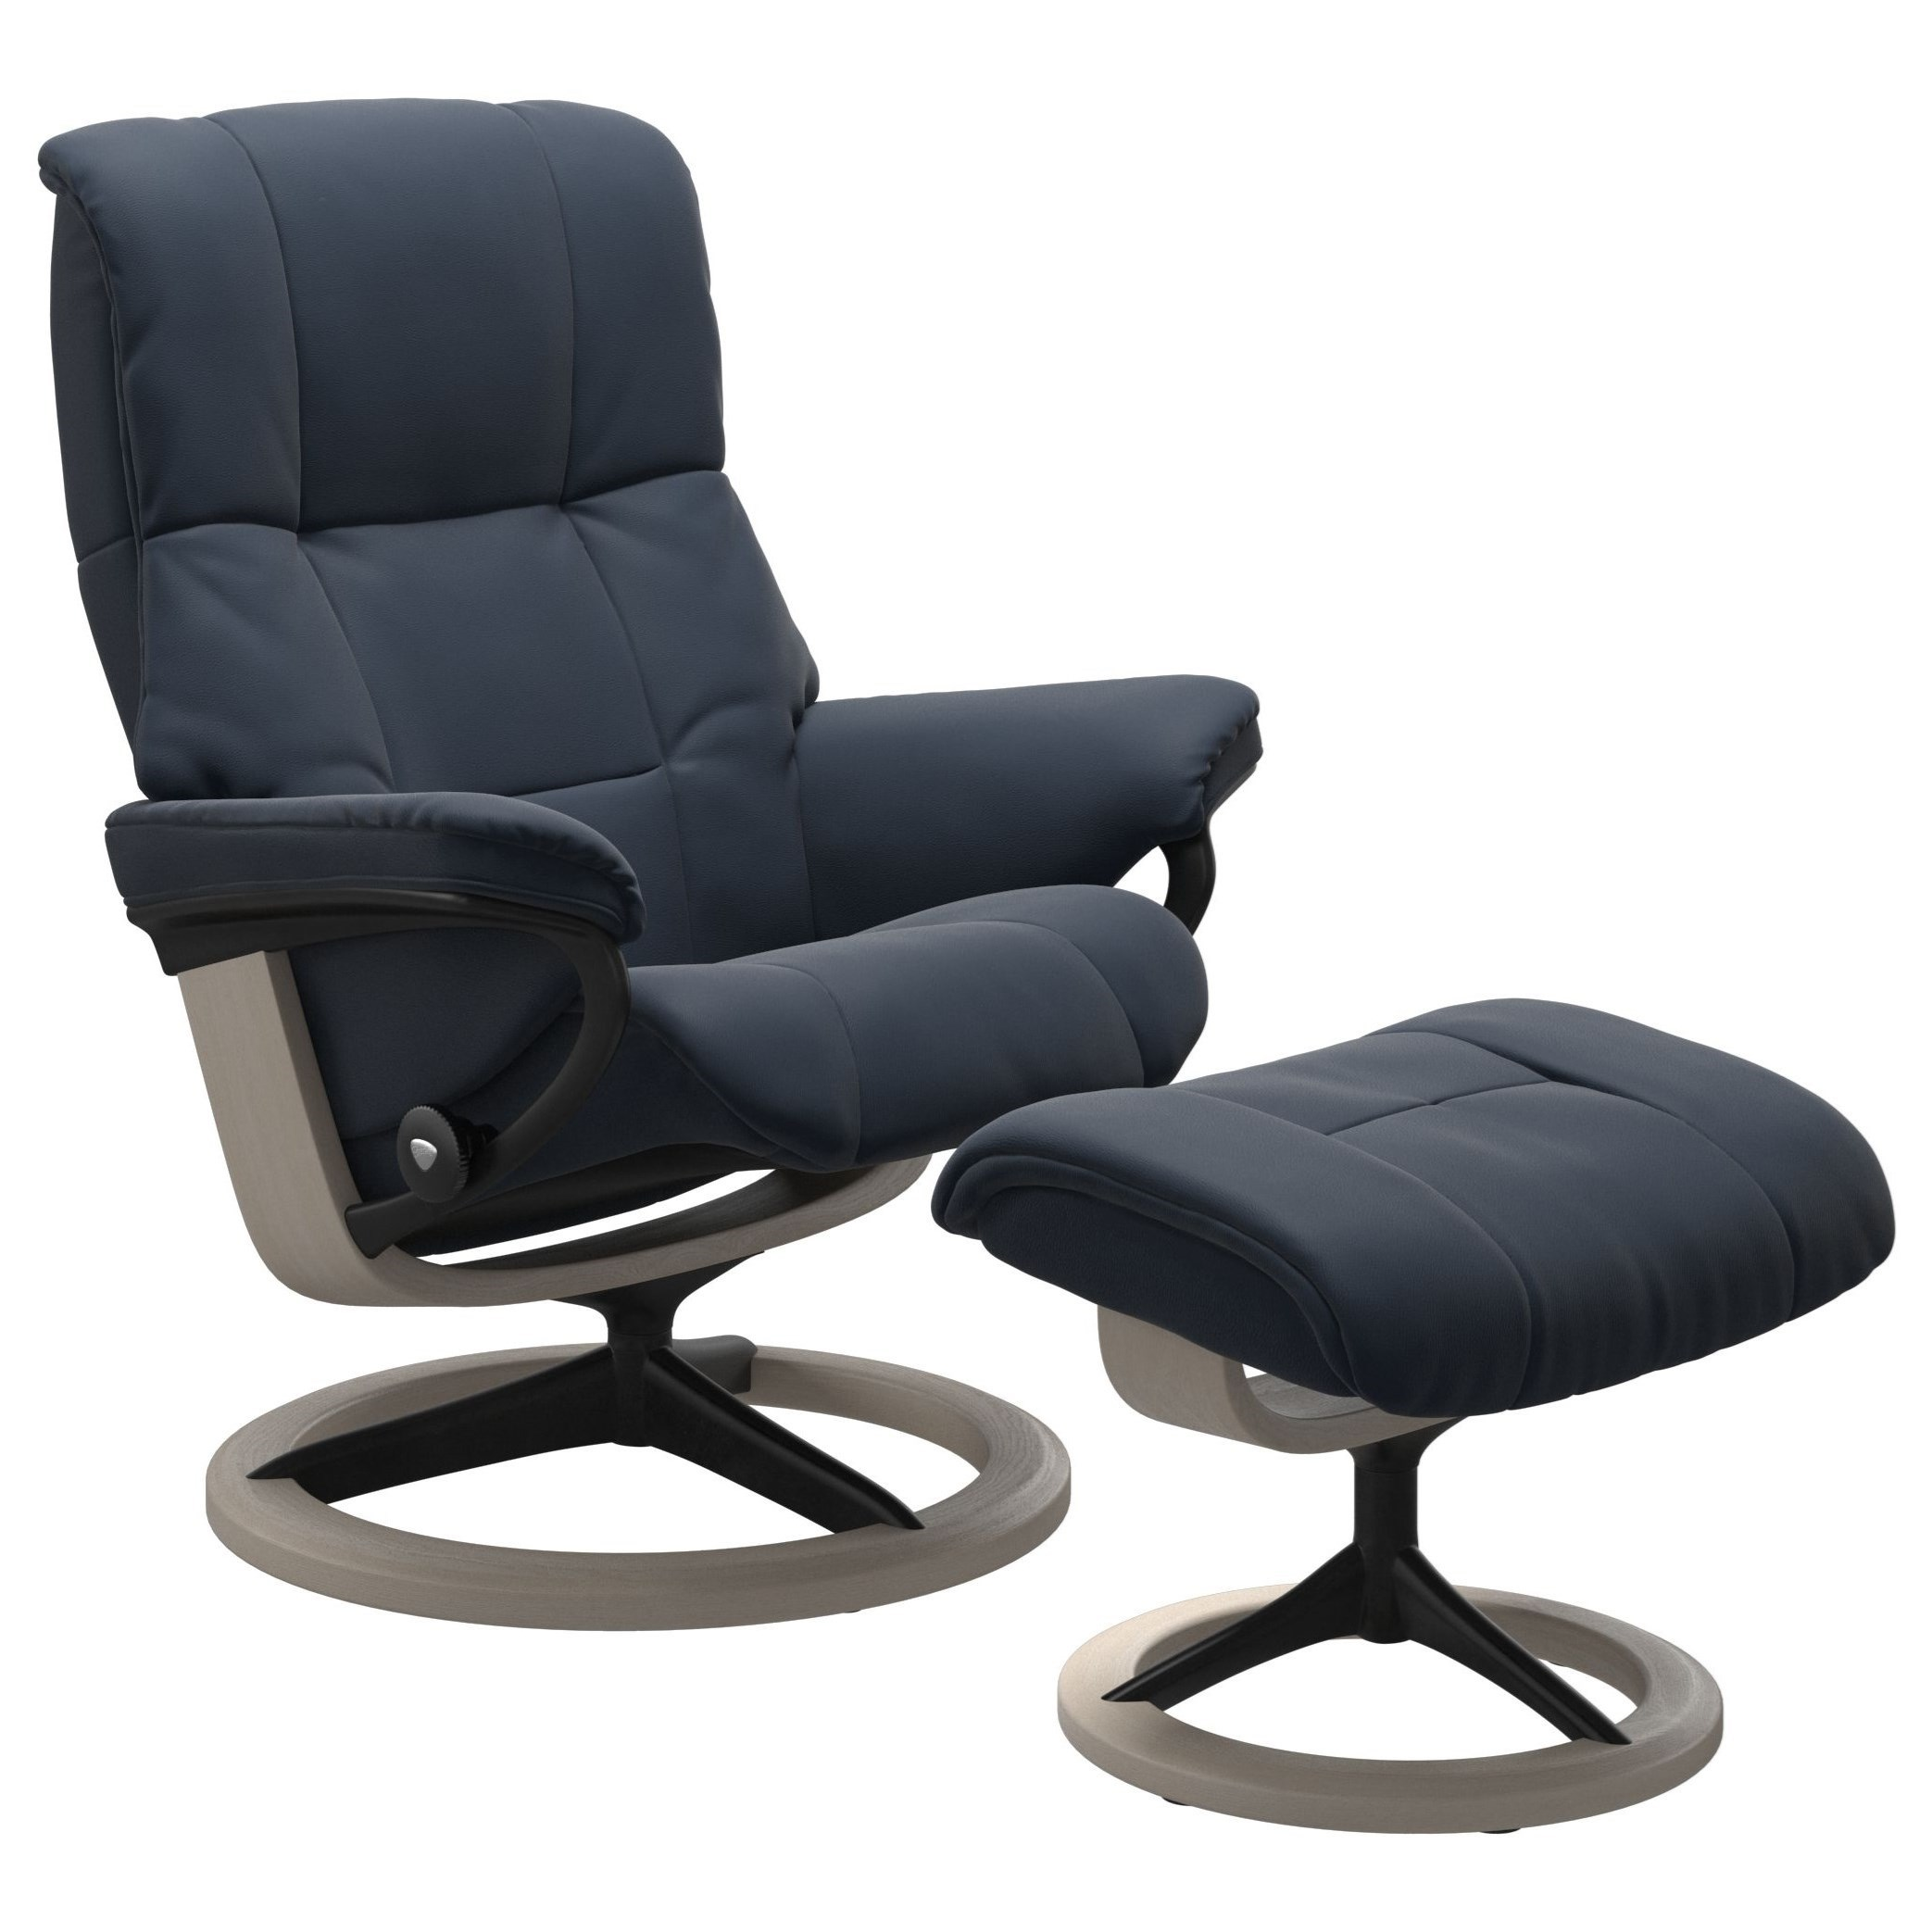 Mayfair Large Reclining Chair and Ottoman by Stressless at HomeWorld Furniture